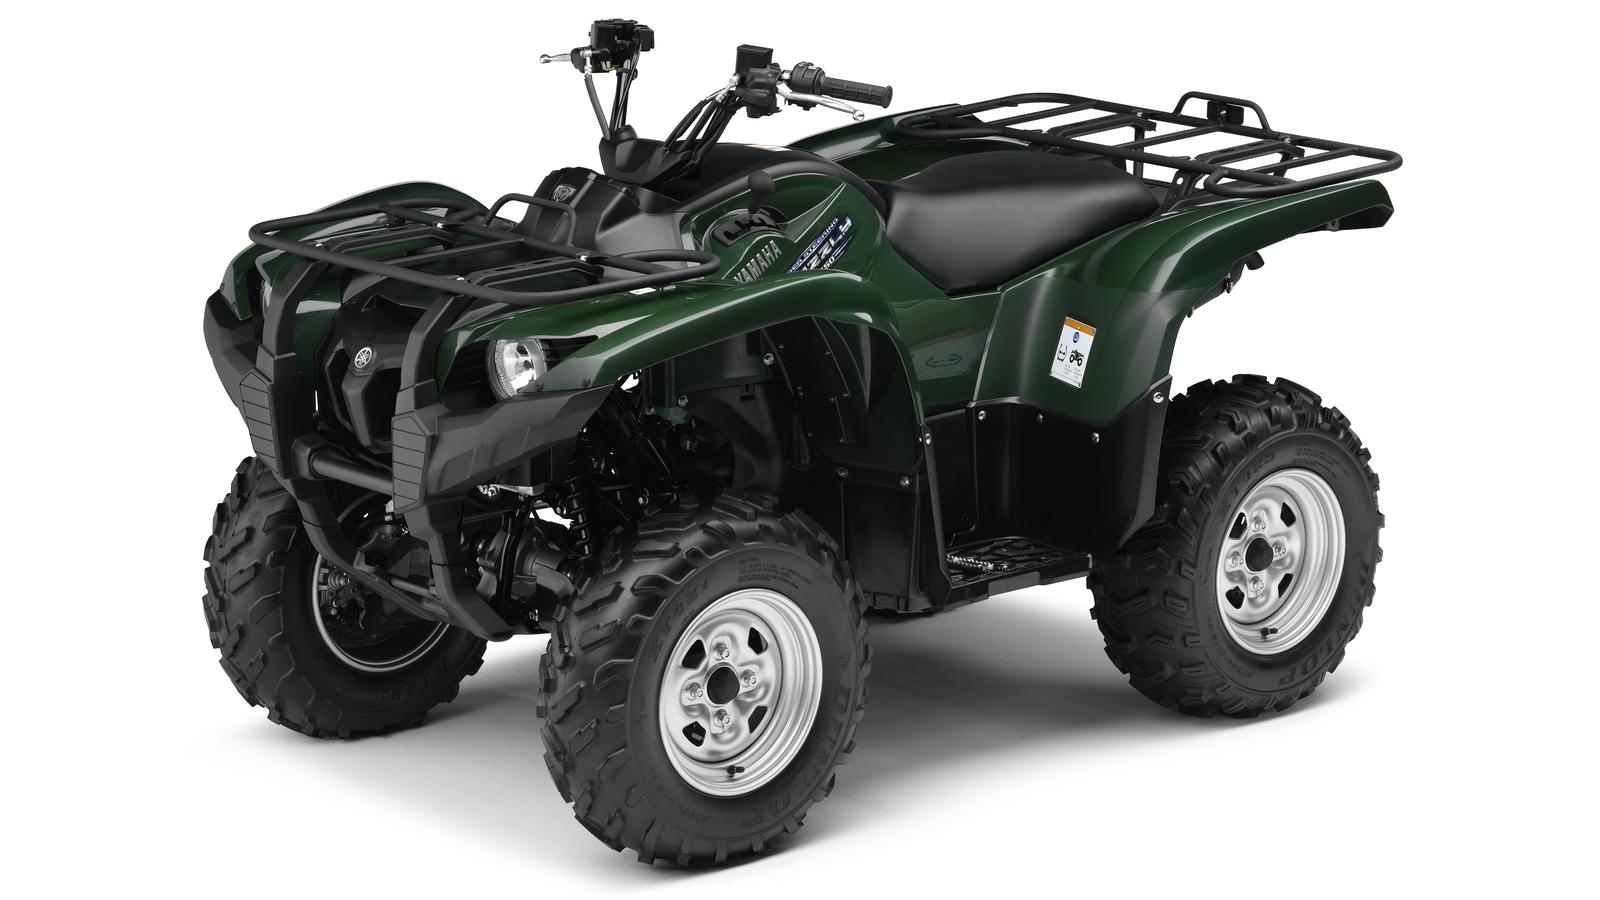 YAMAHA Grizzly 550  2011 photo 8